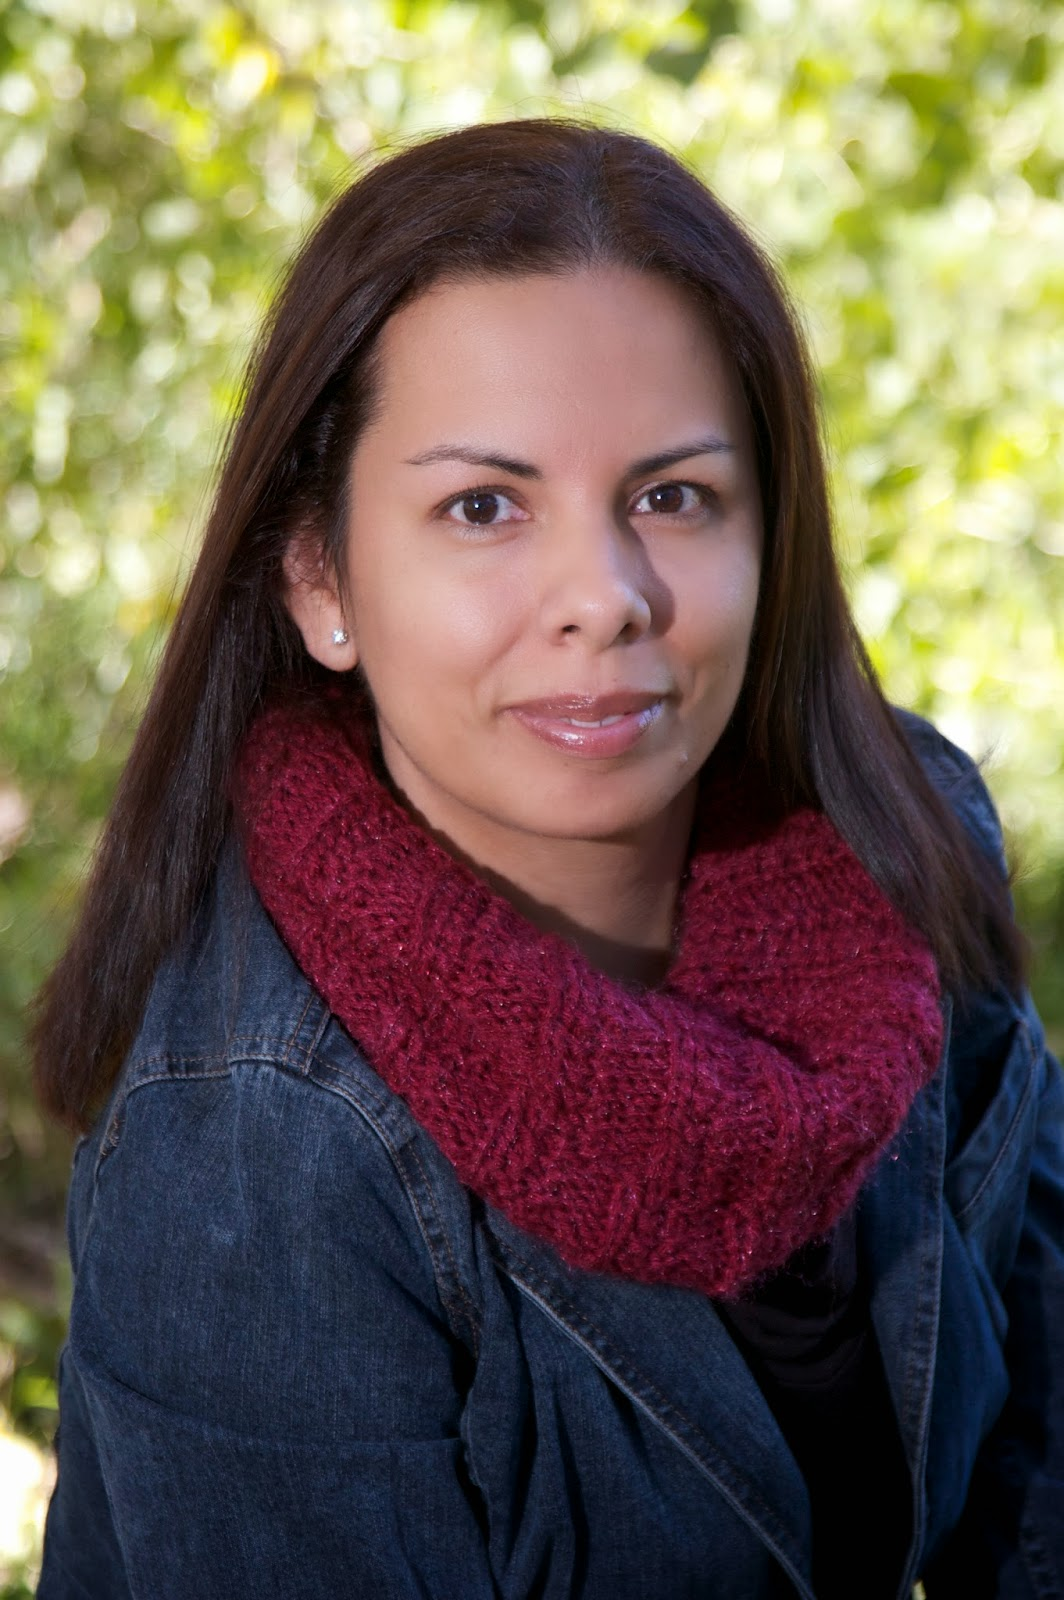 Claudia Y. Burgoa - Author of Getting By